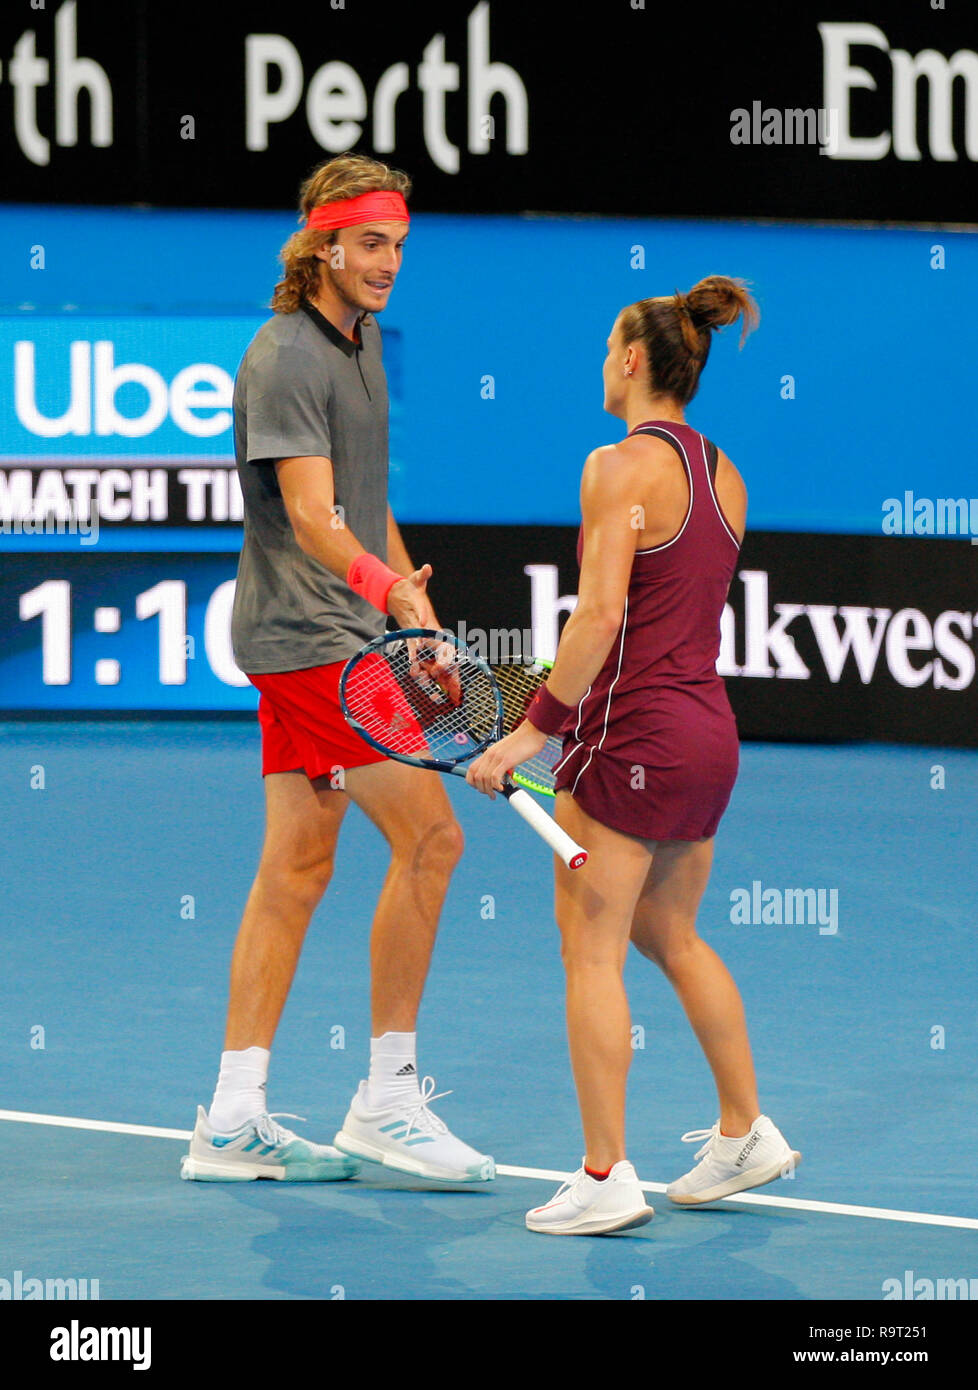 RAC Arena, Perth, Australia. 29th Dec, 2018. Hopman Cup Tennis, sponsored  by Mastercard; Stefanos Tsitsipas and Maria Sakkari of Team Greece come  together during the mixed doubles against Team Great Britain Credit: